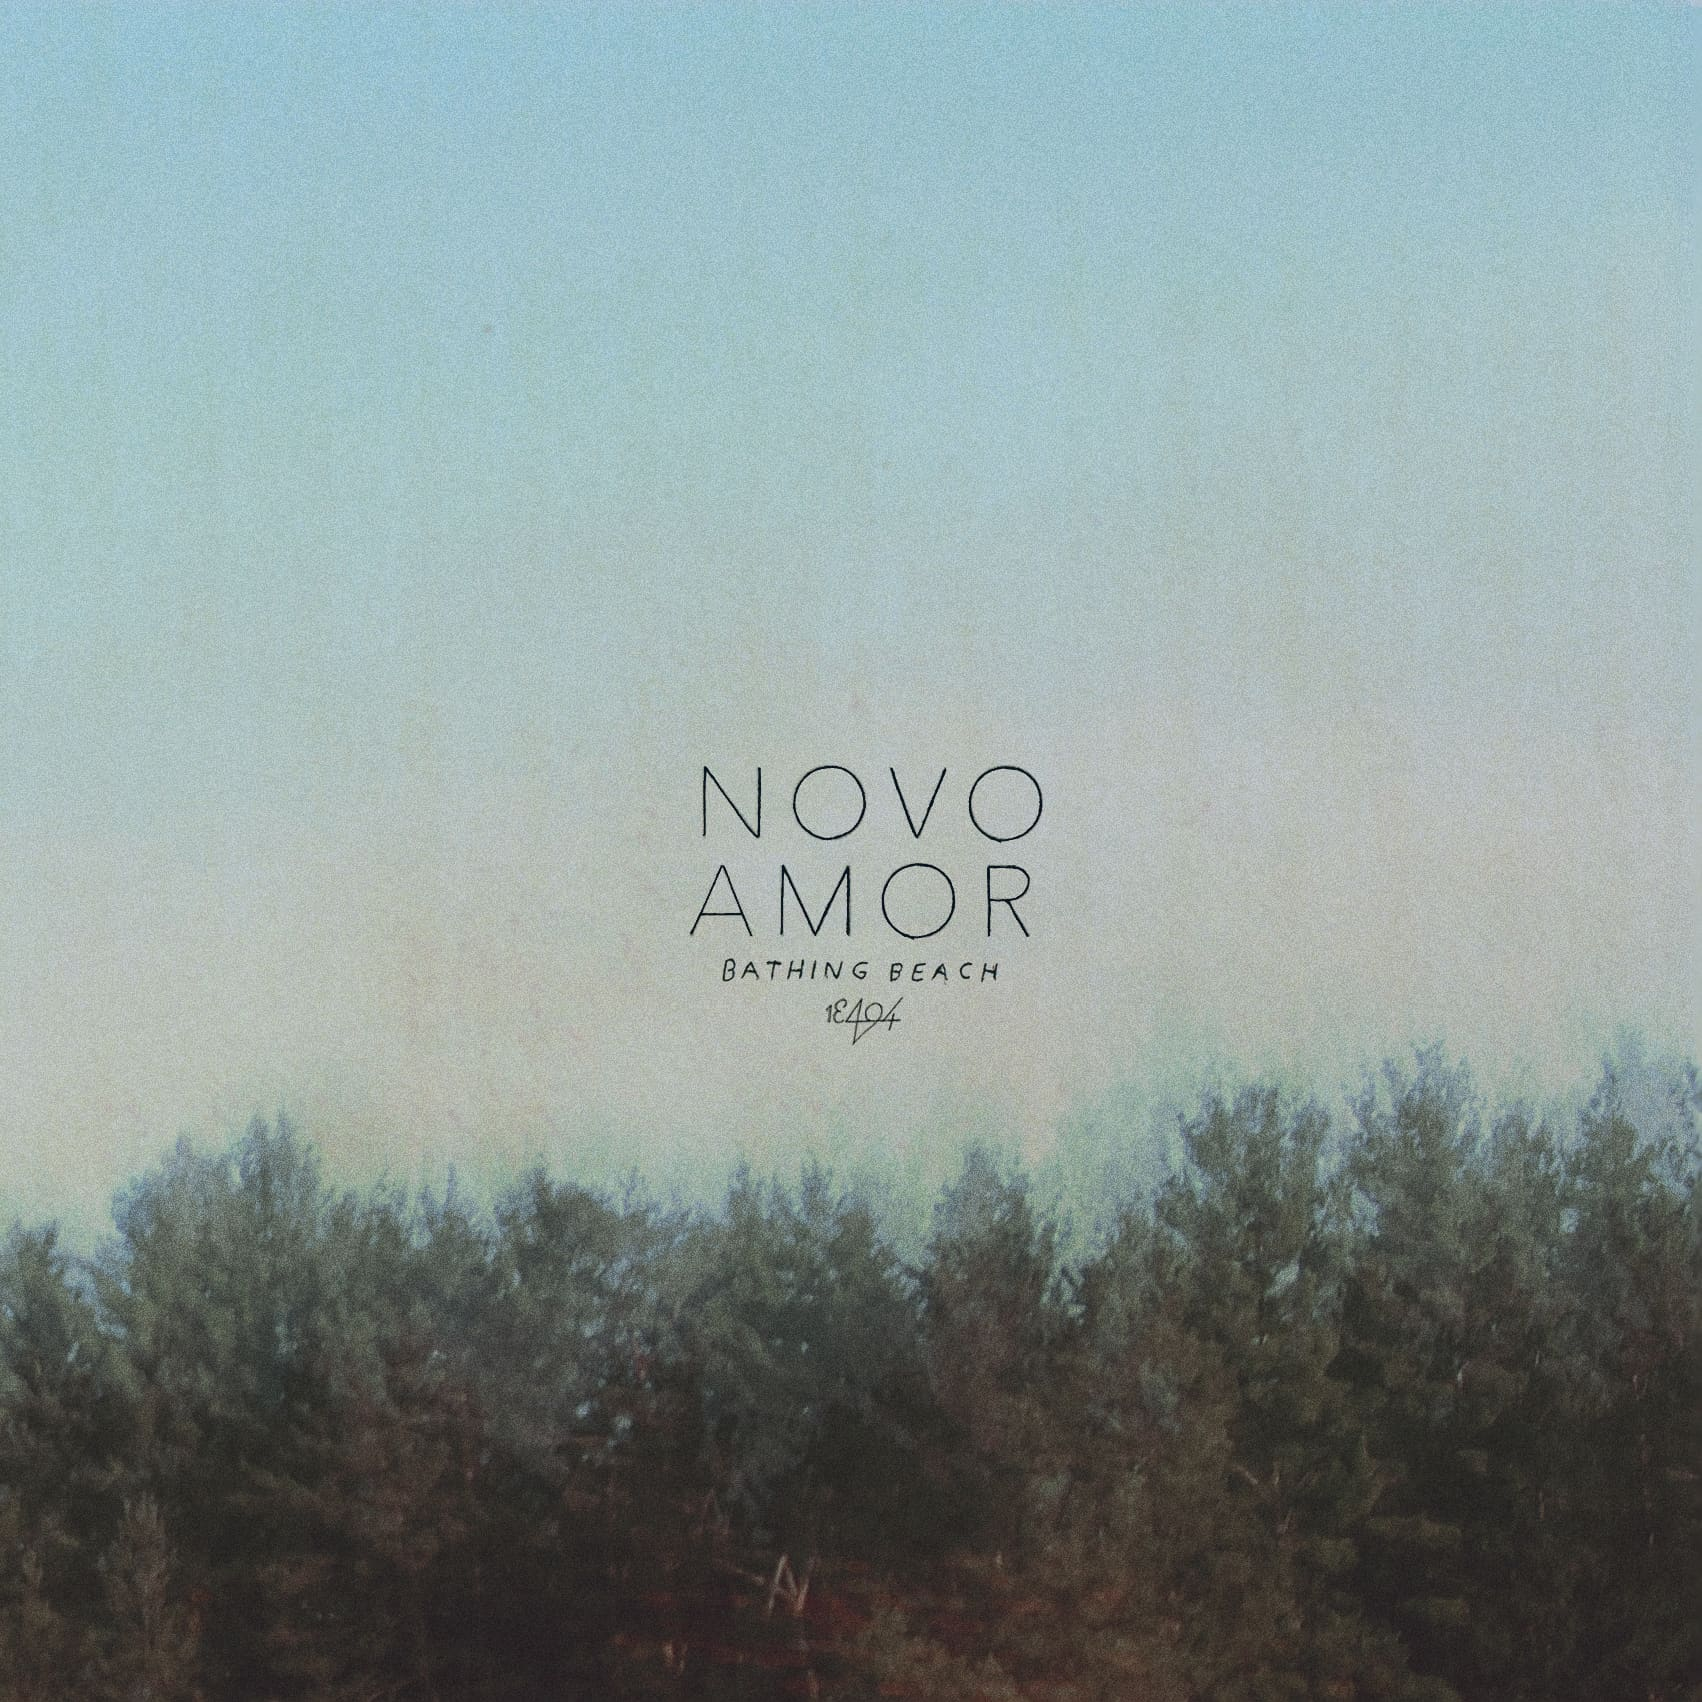 Novo Amor releases 'Bathing Beach' EP